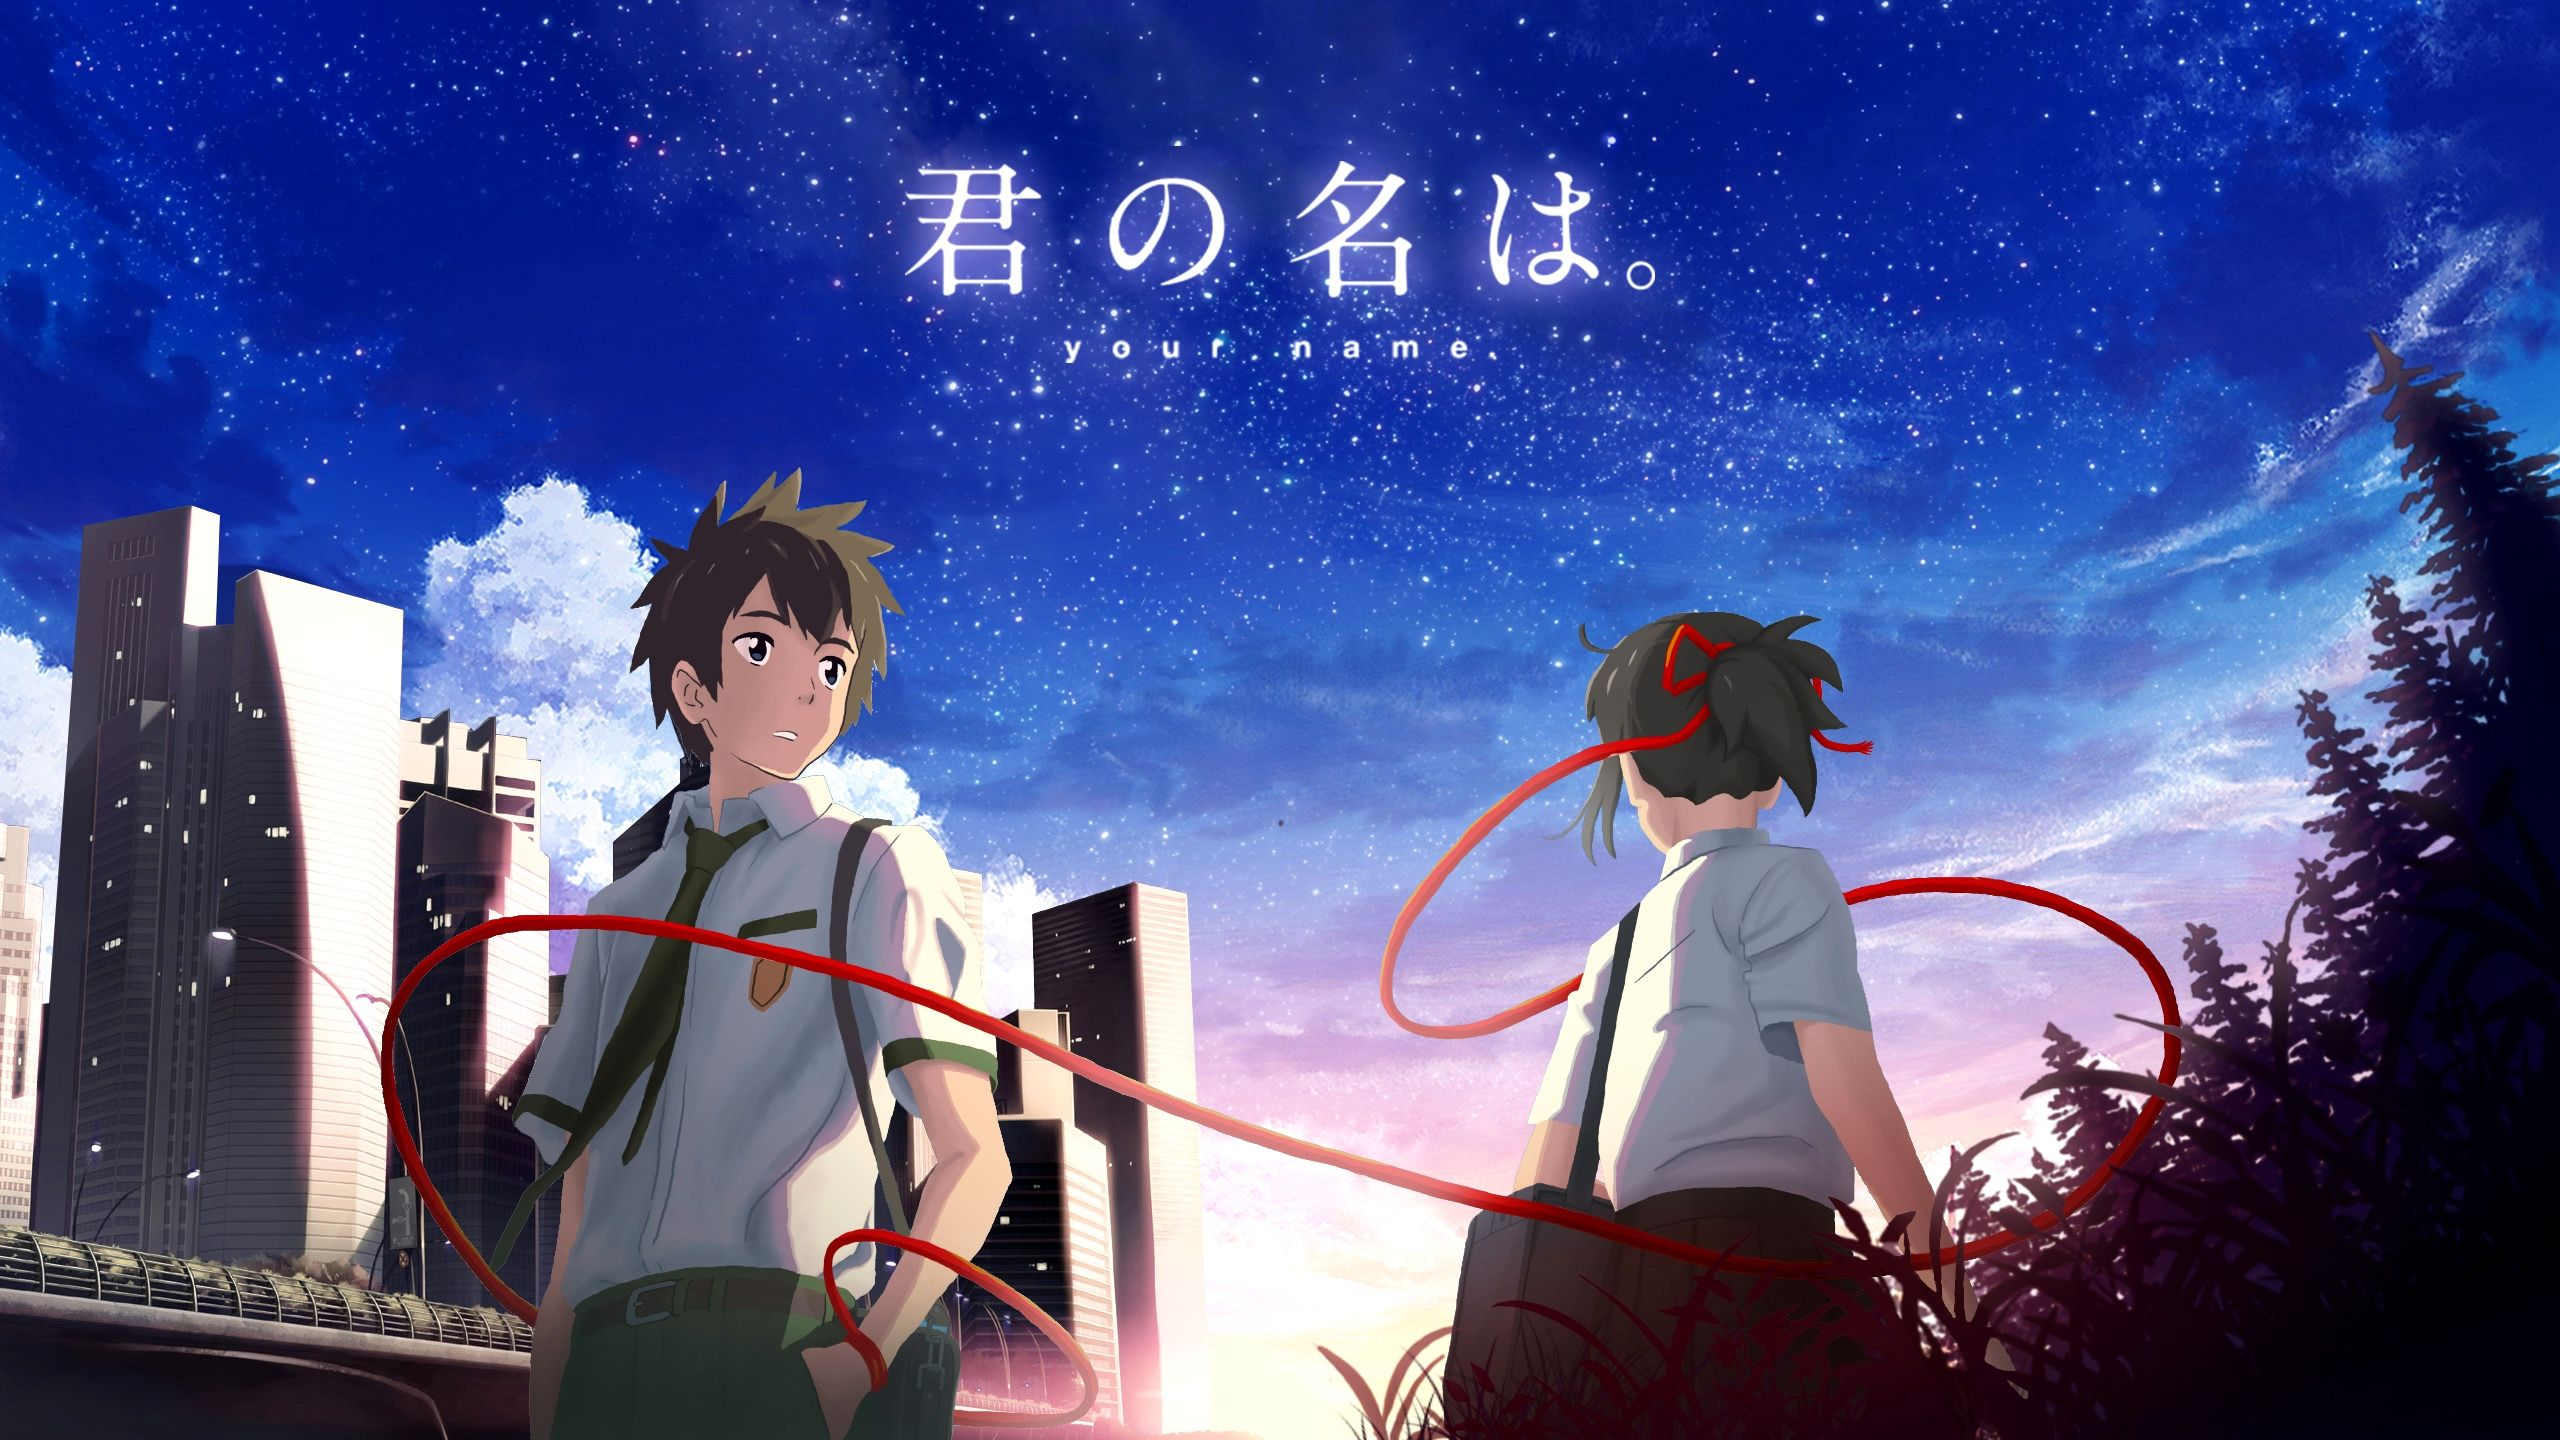 Wallpaper 4k Kimi No Na Wa Trick 4k Best Of Wallpapers For Andriod And Ios Cet objet est incompatible avec wallpaper engine. wallpaper 4k kimi no na wa trick 4k